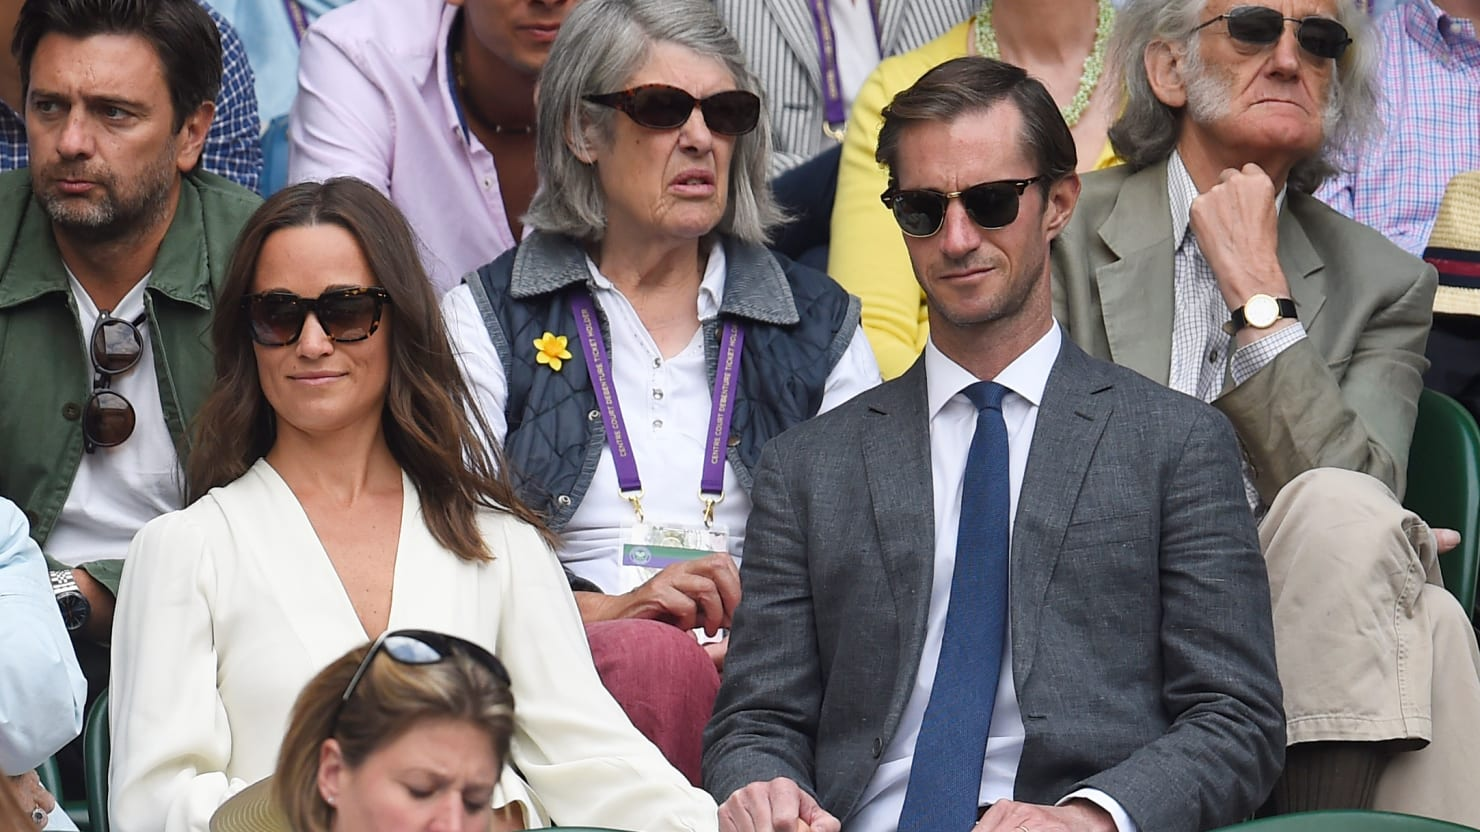 Kate Middleton S Pregnant Again Will Her Sister Pippa